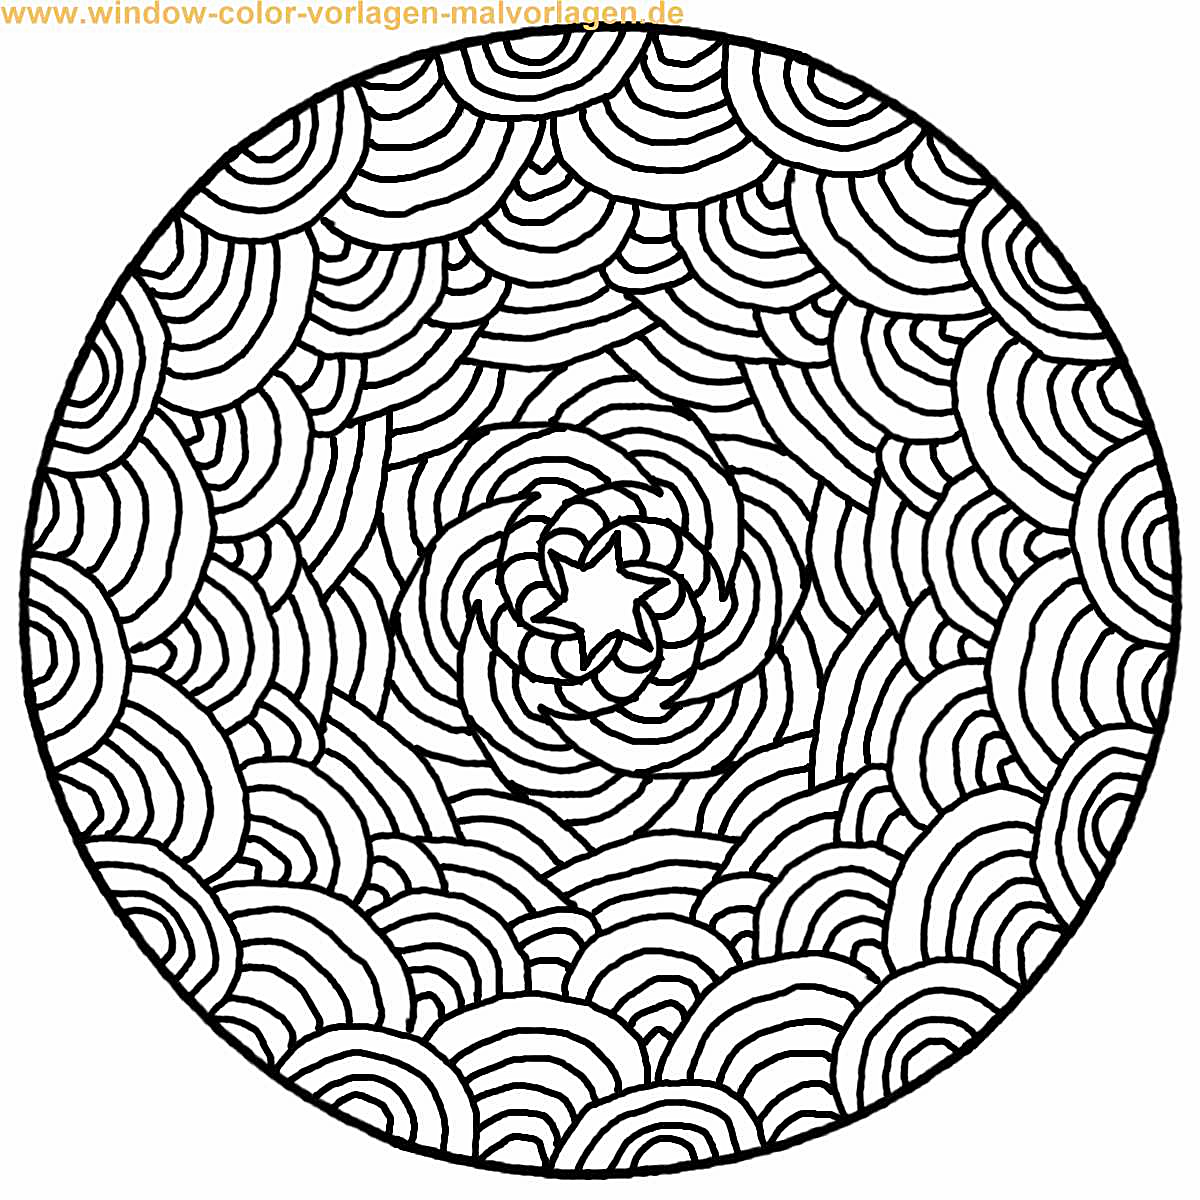 Mandala 007 | patterns | Pinterest | Ausmalbilder, Ausmalen und ...